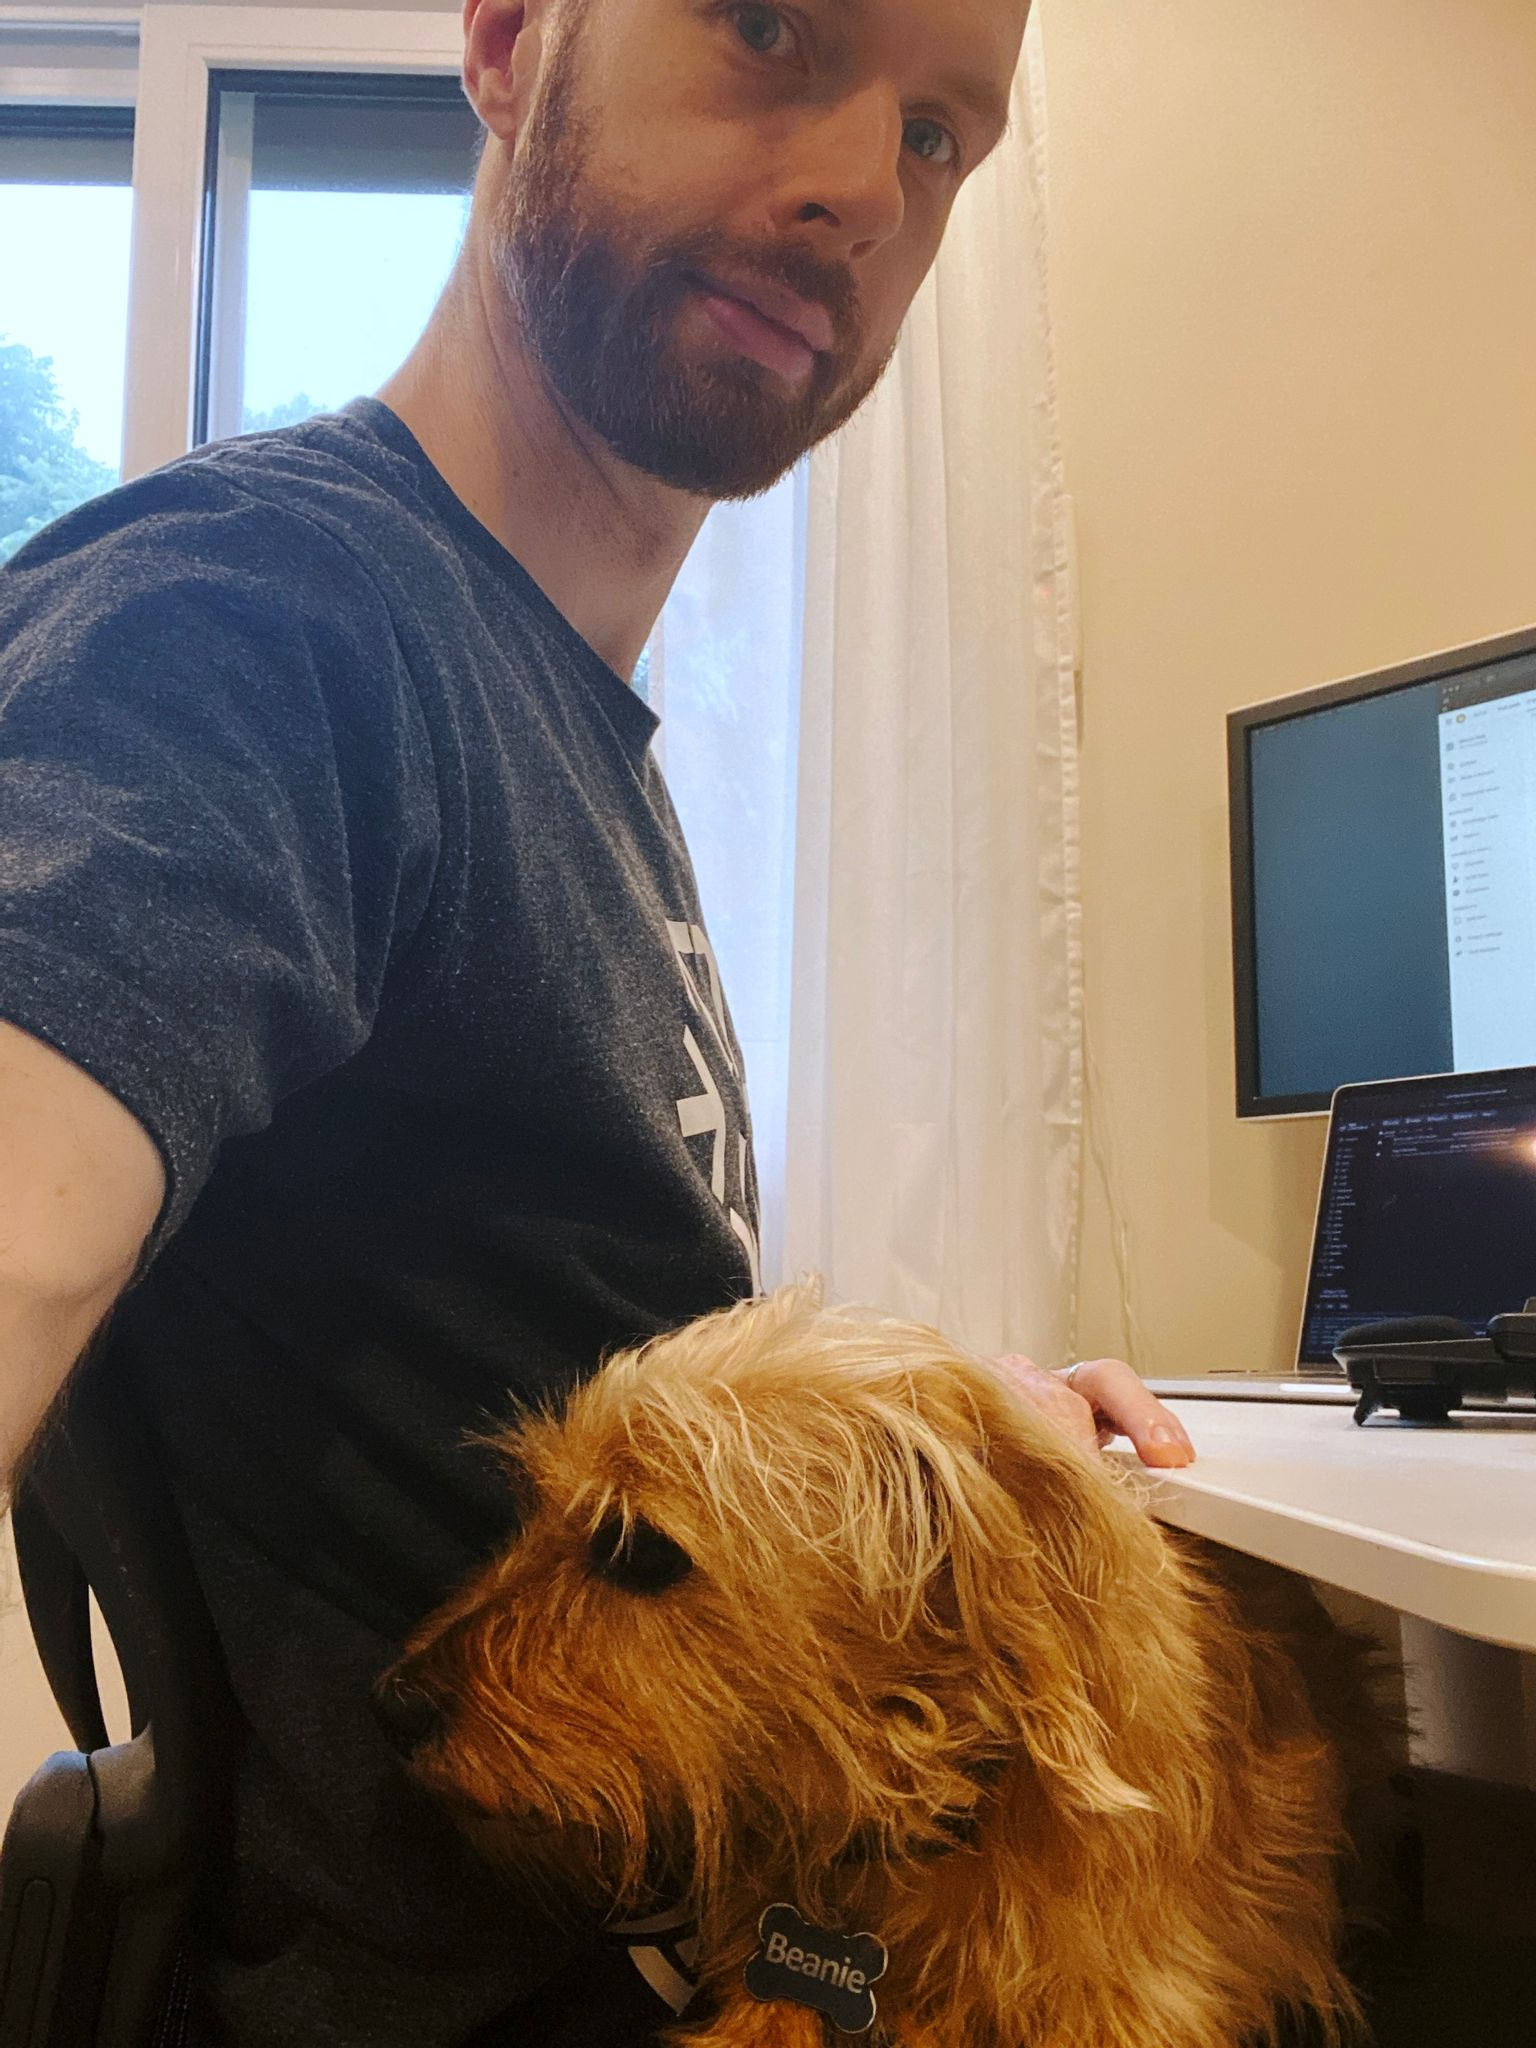 A selfie of me, a white man with short hair and a short beard, sitting at my desk, with a small scruffy blonde dog lying in my lap.